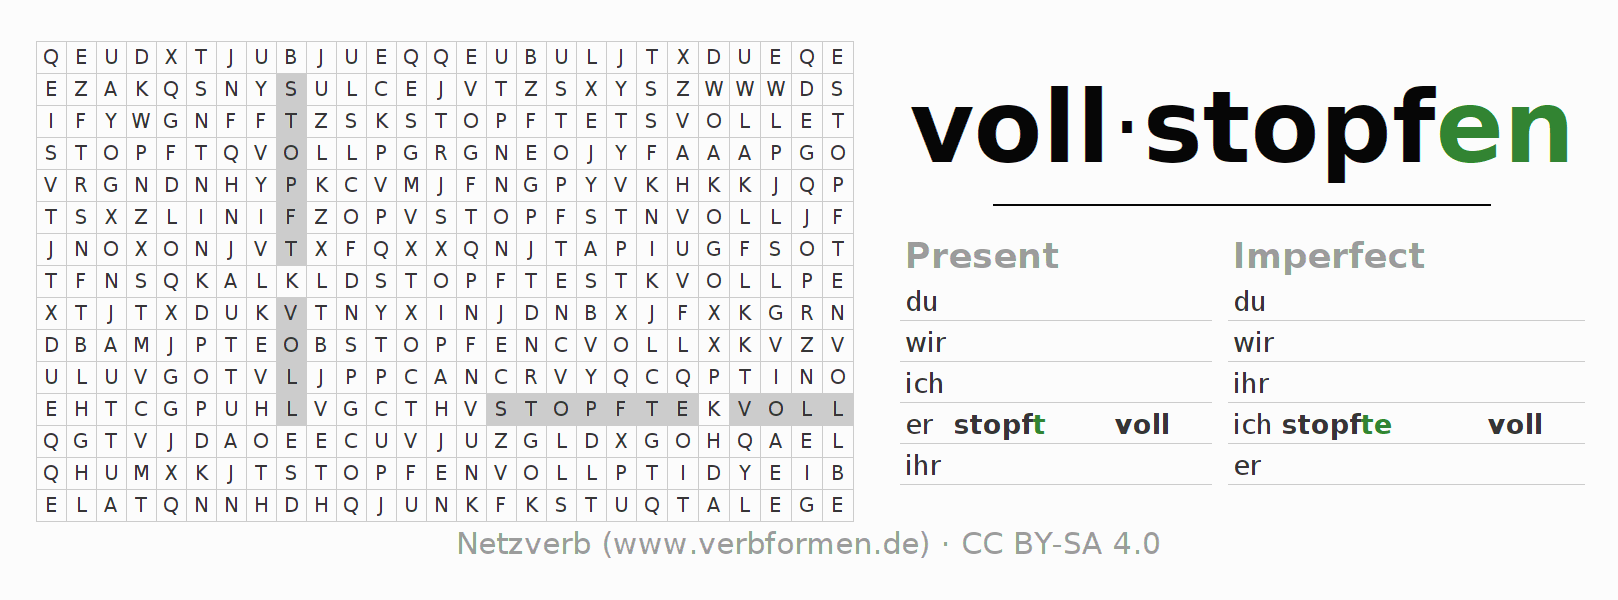 Word search puzzle for the conjugation of the verb vollstopfen